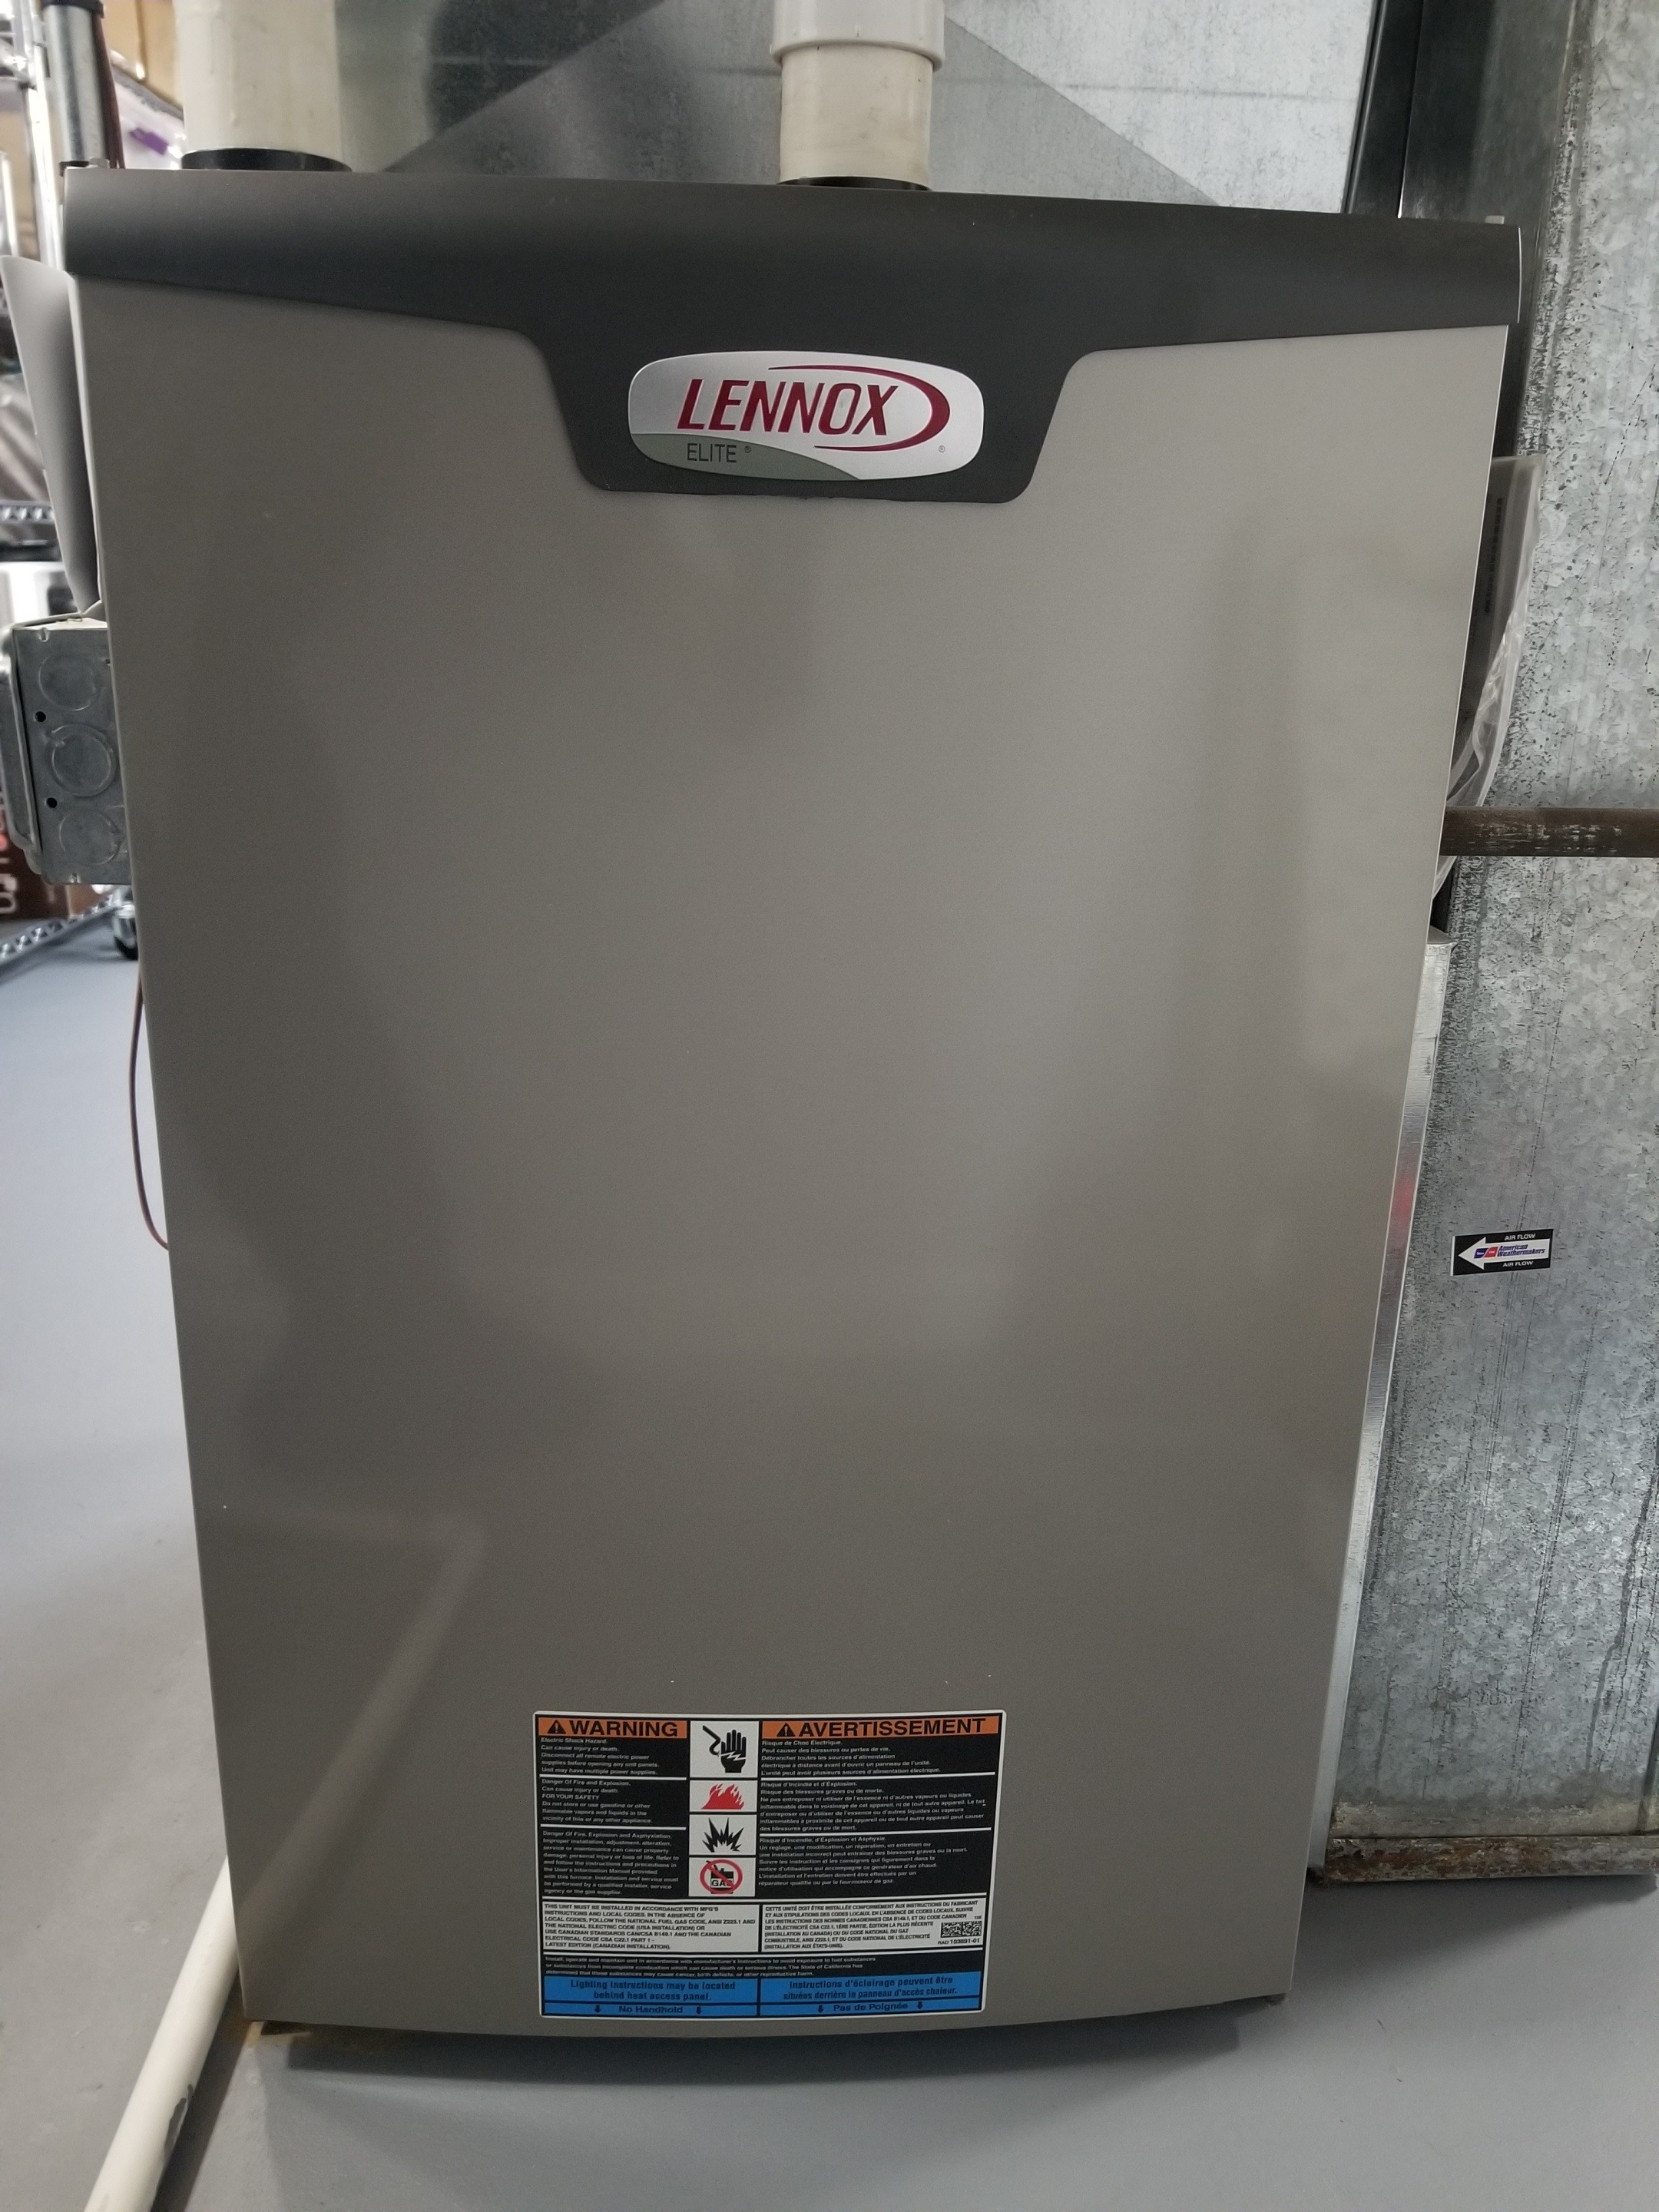 Performed annual maintenance on the Lennox furnace and Aprilaire humidifier and made adjustments to improve the overall efficiency and life expectancy of the equipment